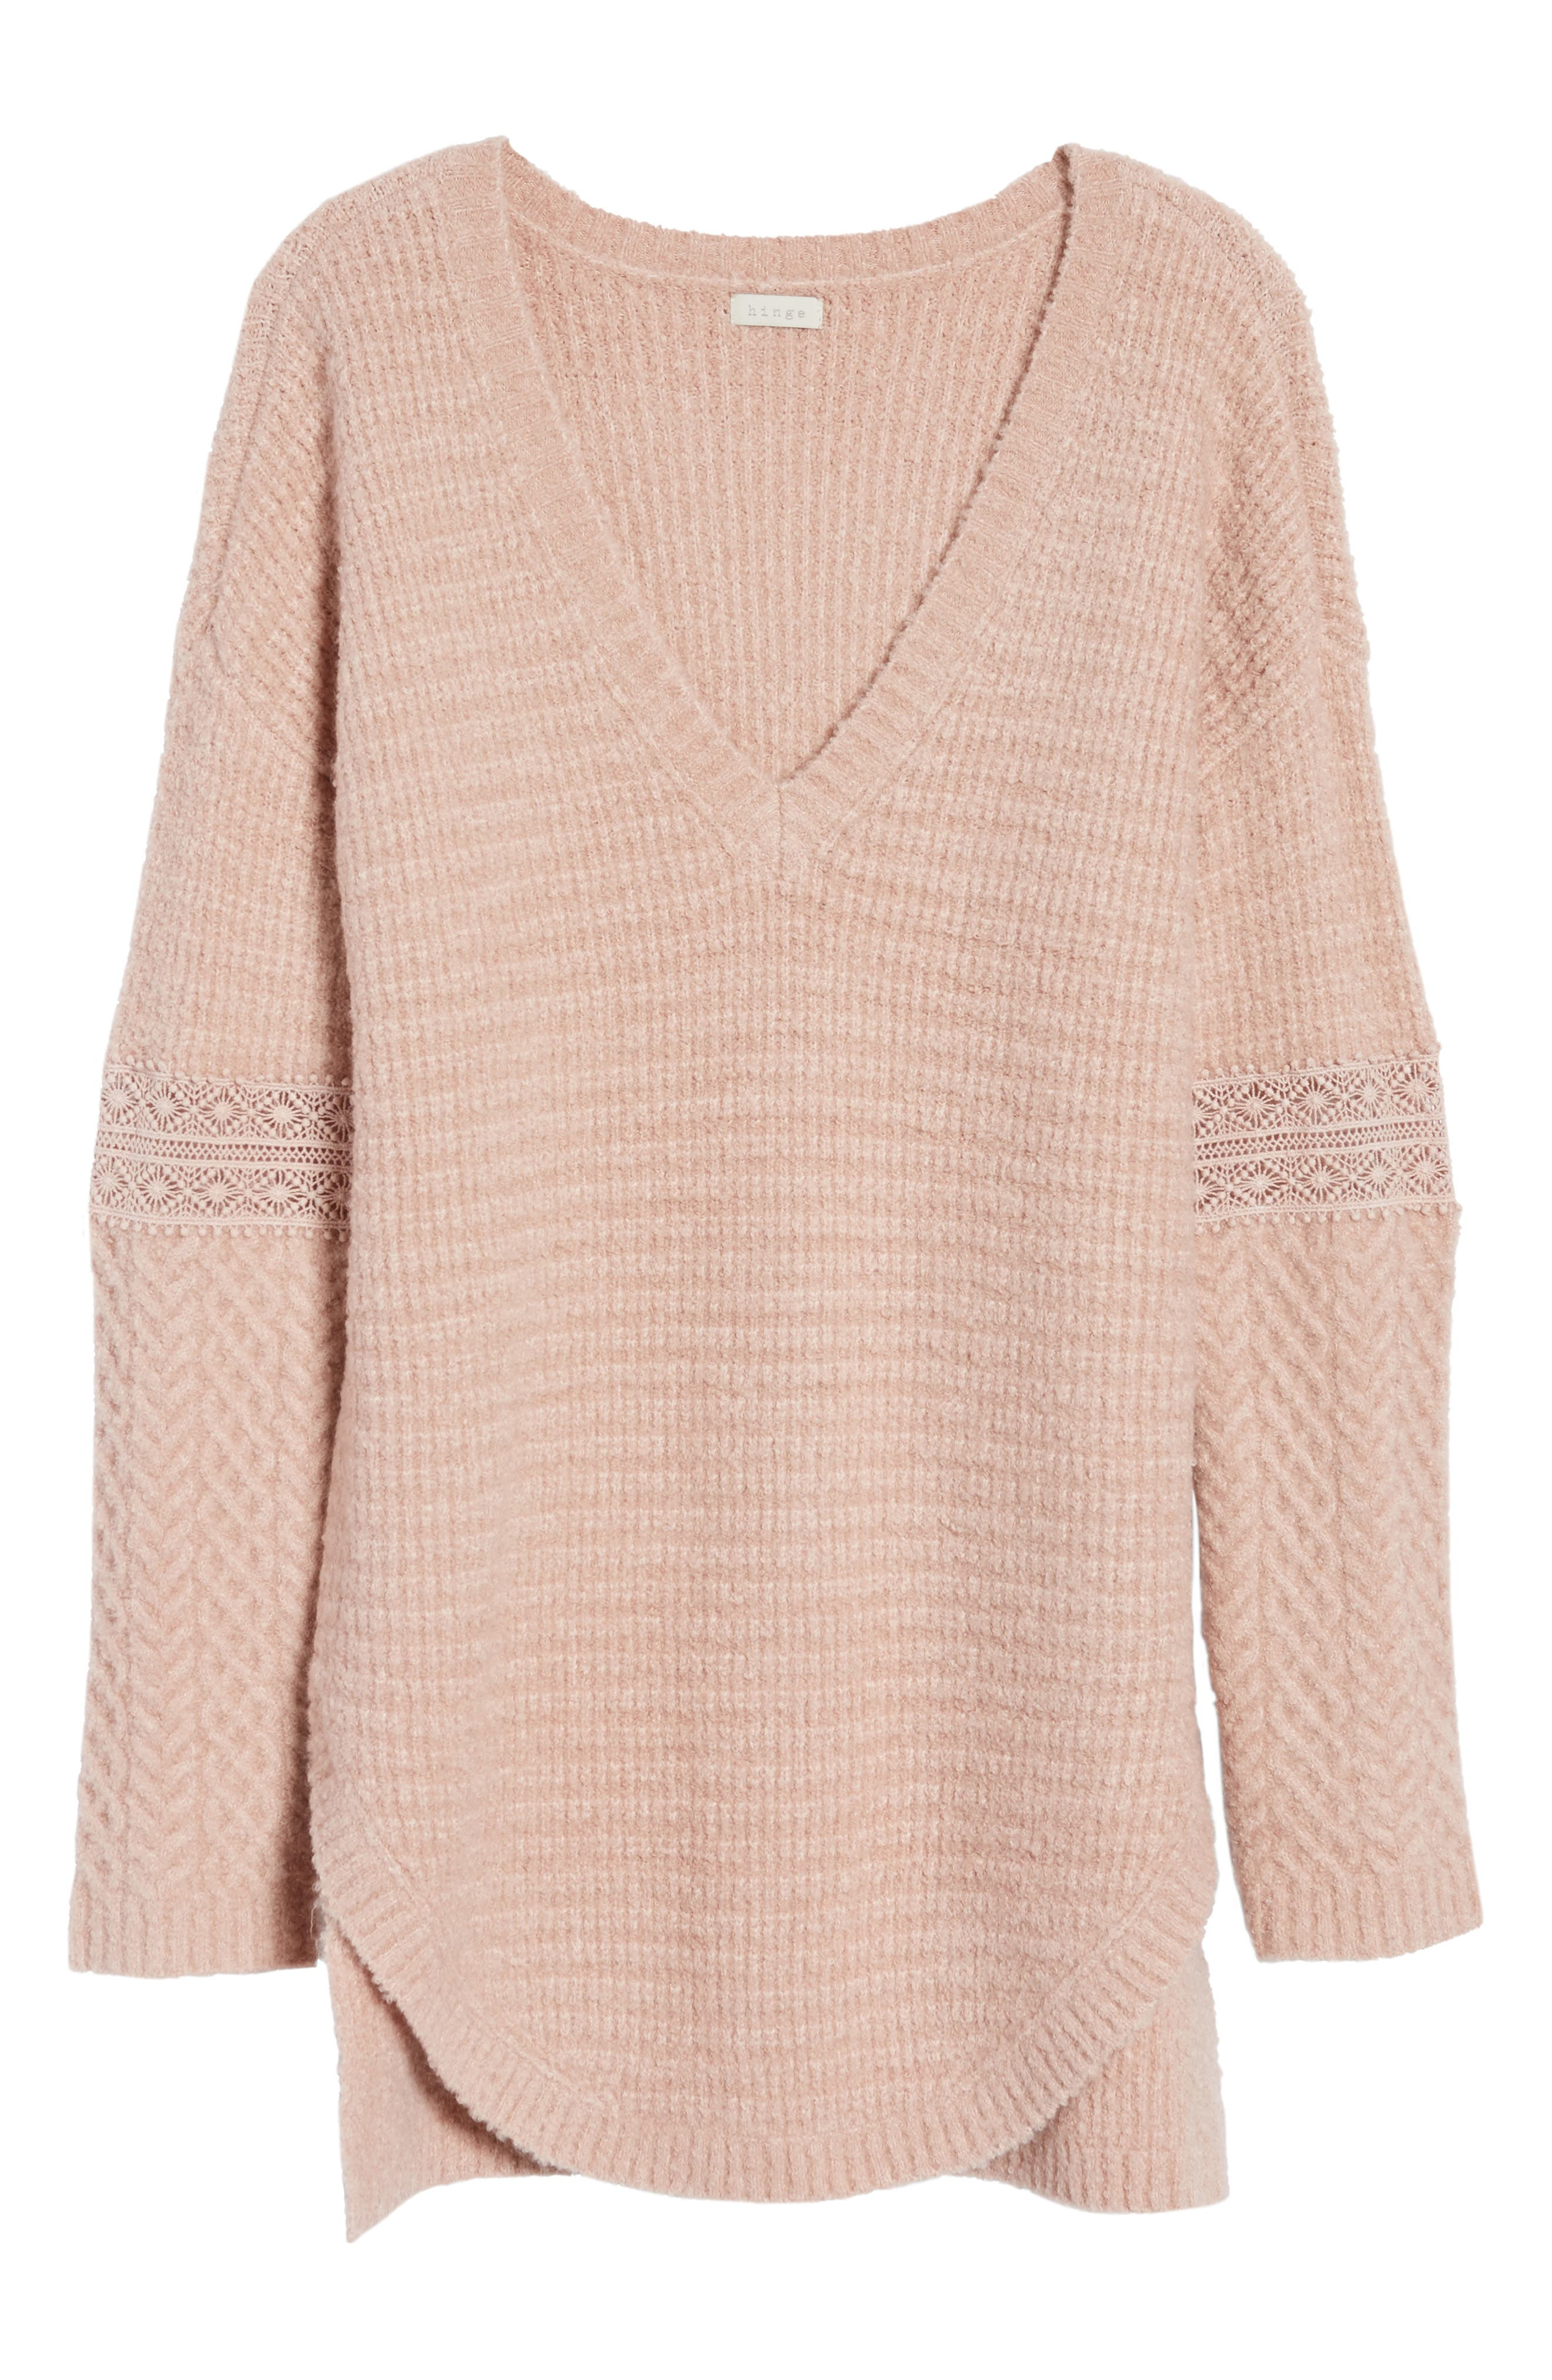 Lace Inset V-Neck Sweater,                             Alternate thumbnail 6, color,                             Pink Adobe